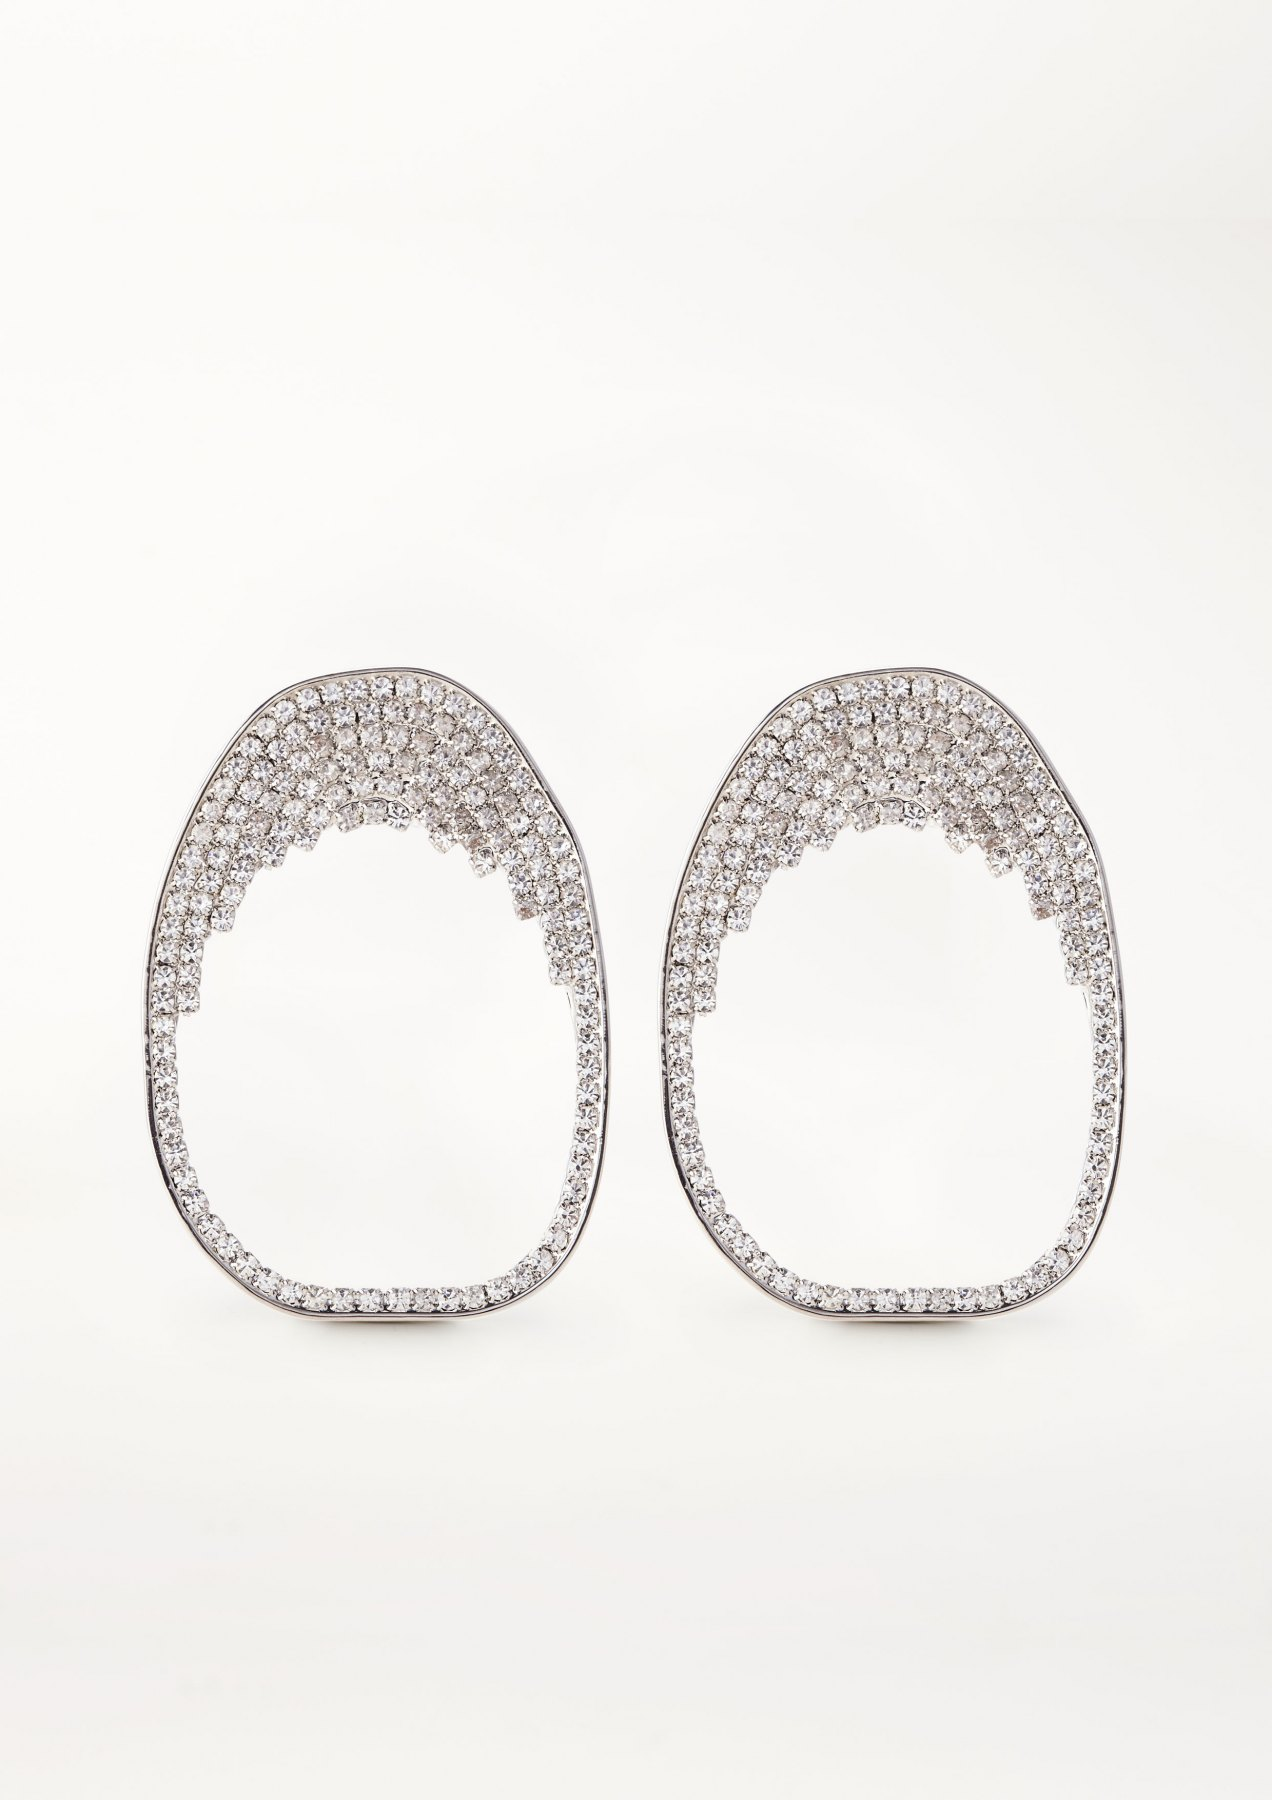 xenia bous jewellery sparkling outcut 01 earrings swarovski cristals